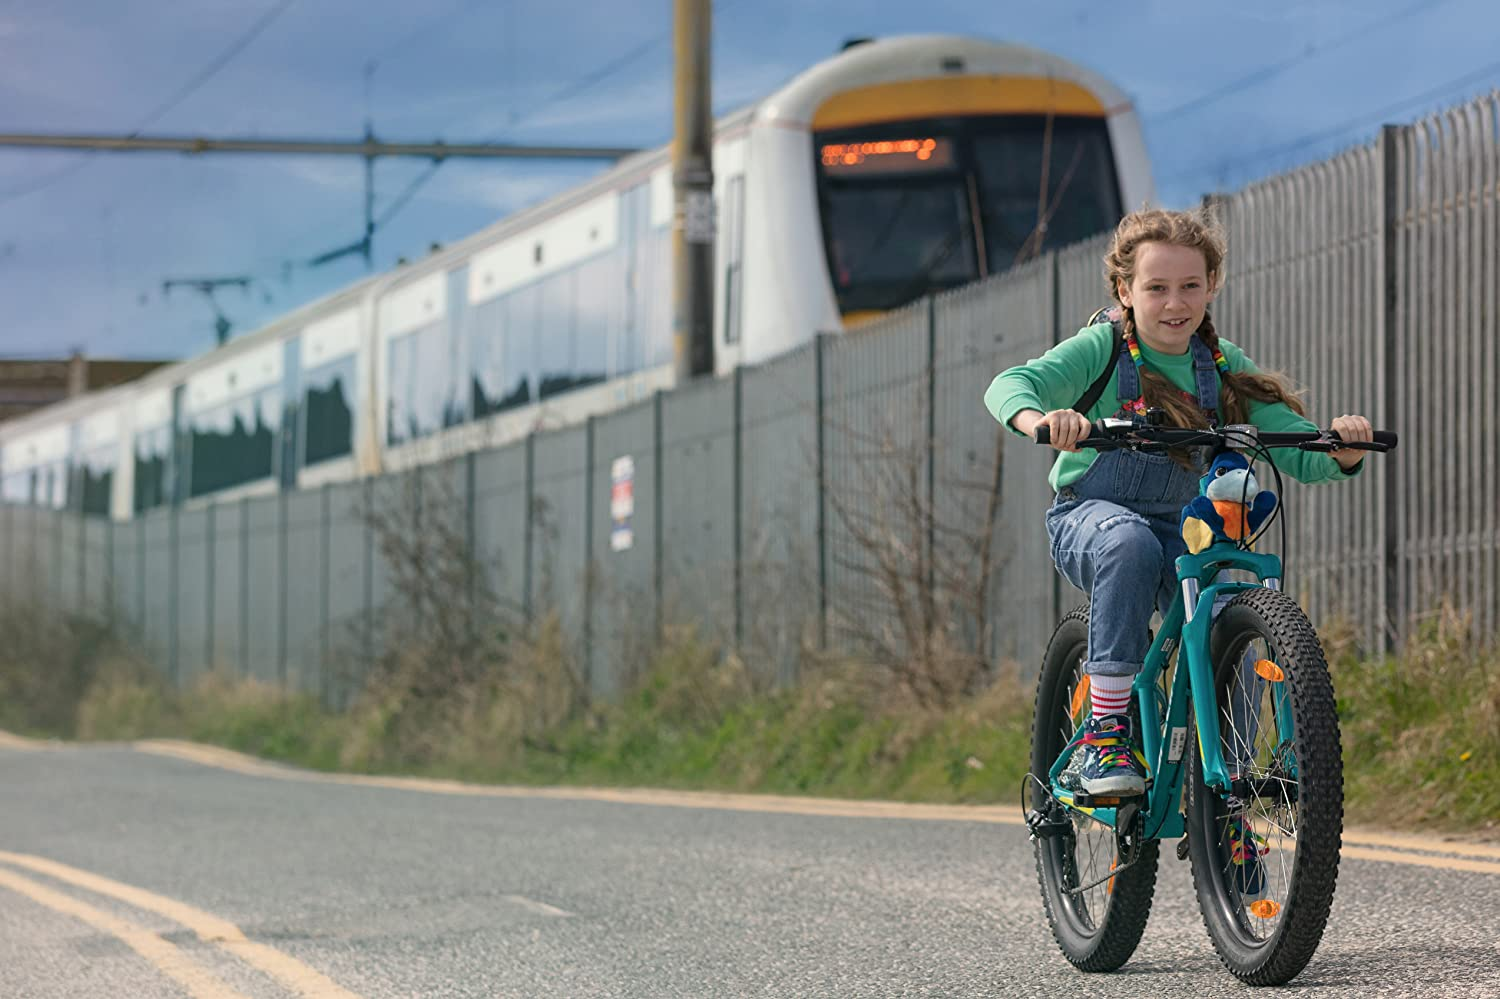 Maisie Thorn in The Bicycle Thief (2018)